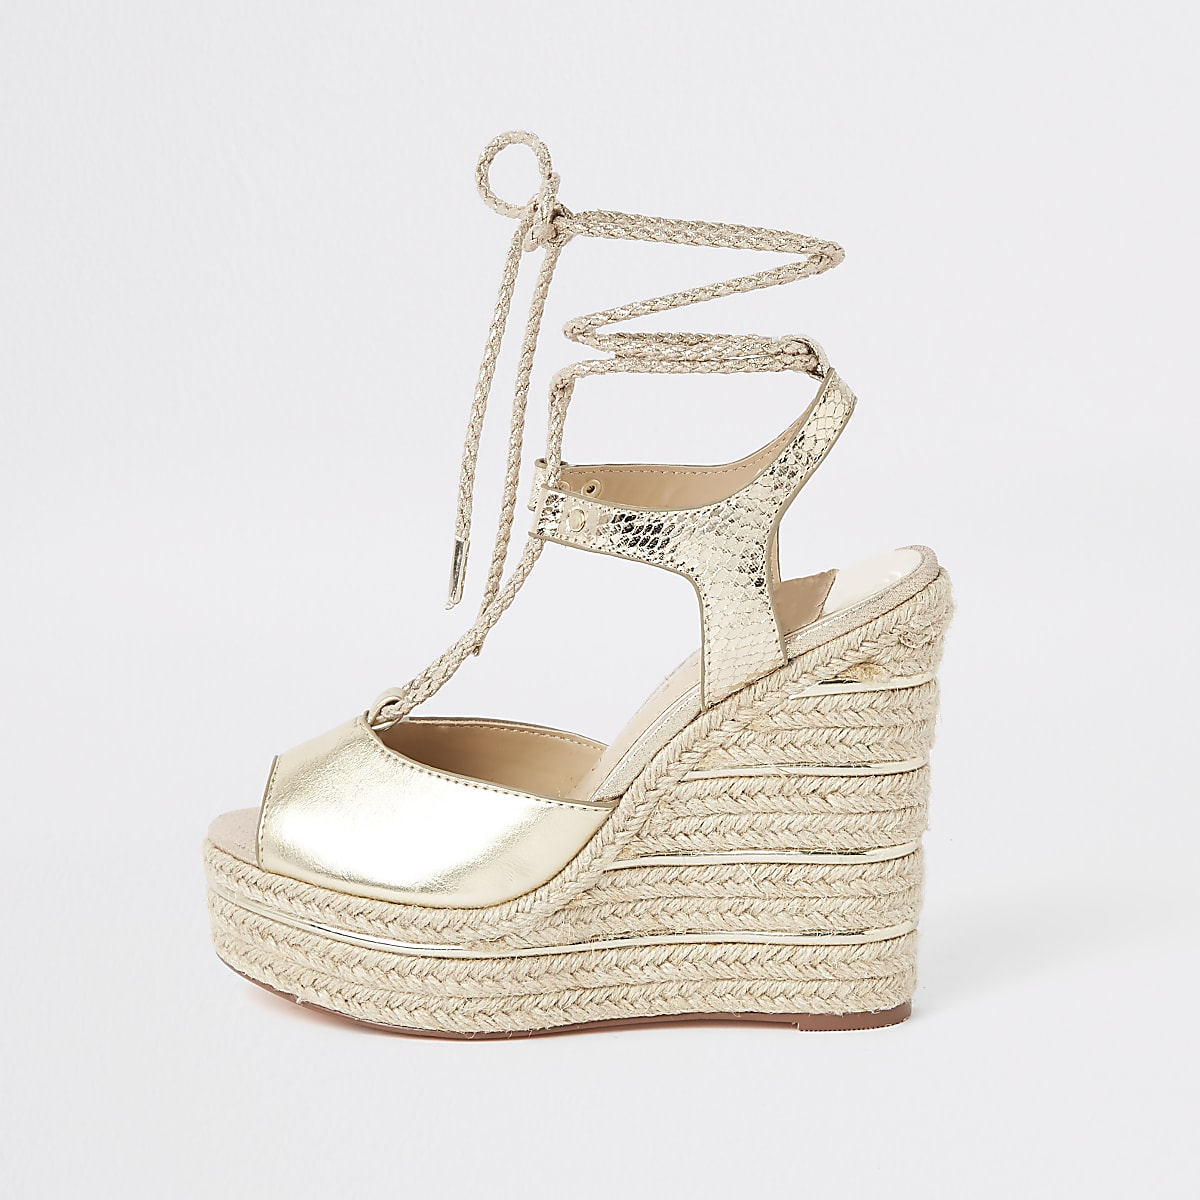 5c5e705e4 Gold metallic rope tie-up espadrille wedges - Sandals - Shoes   Boots -  women